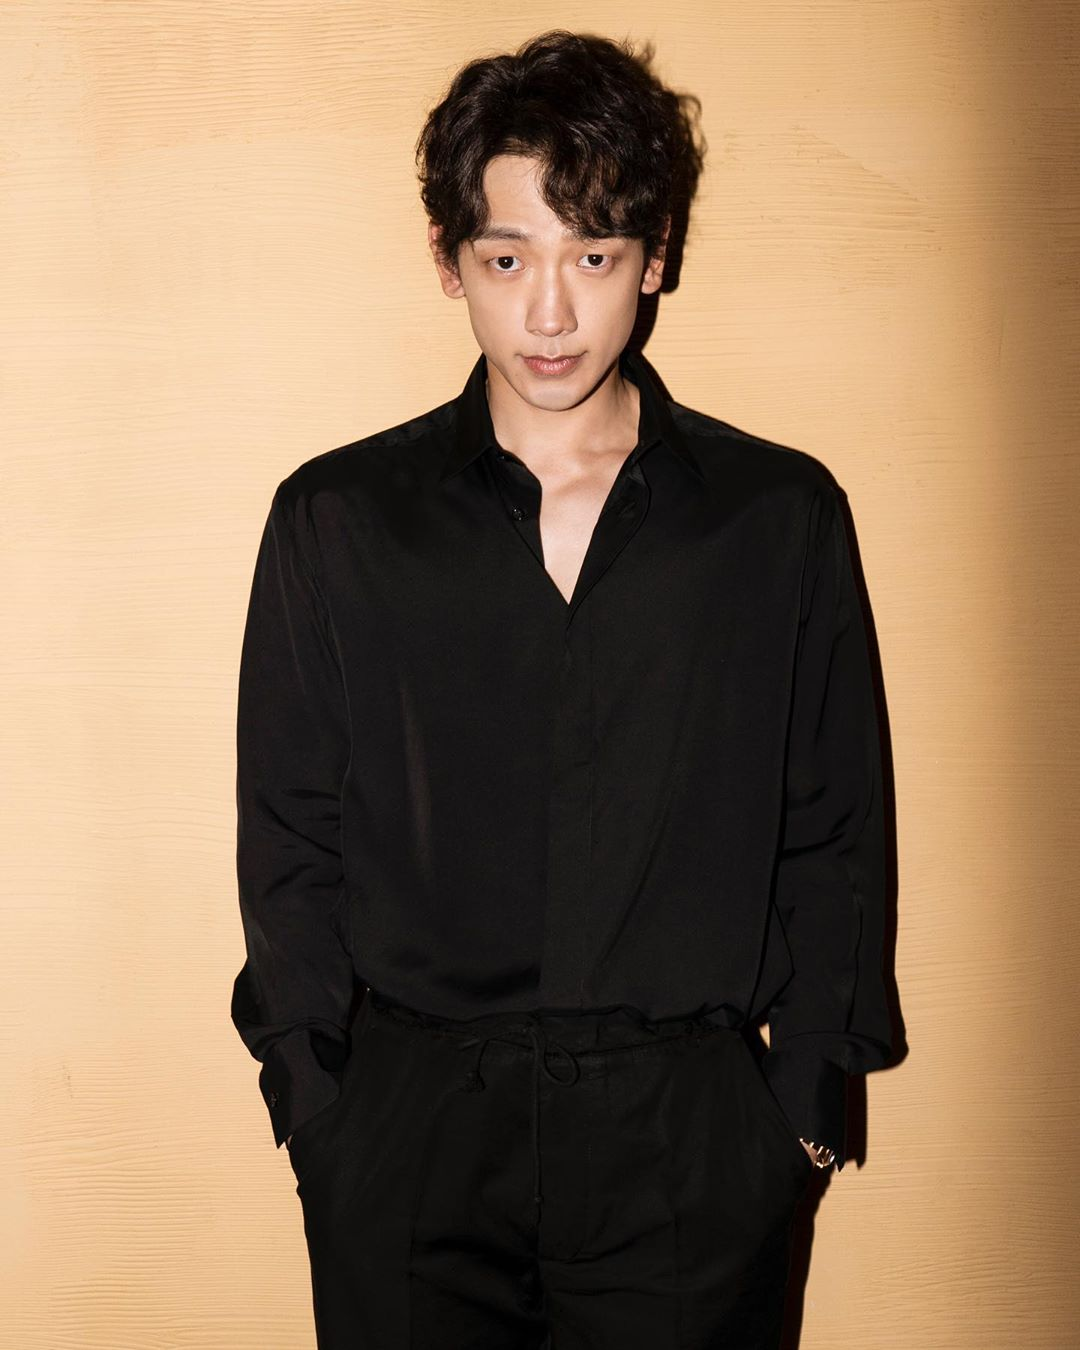 Rain South Korean Singer-Song Writer, Actor, Music Producer